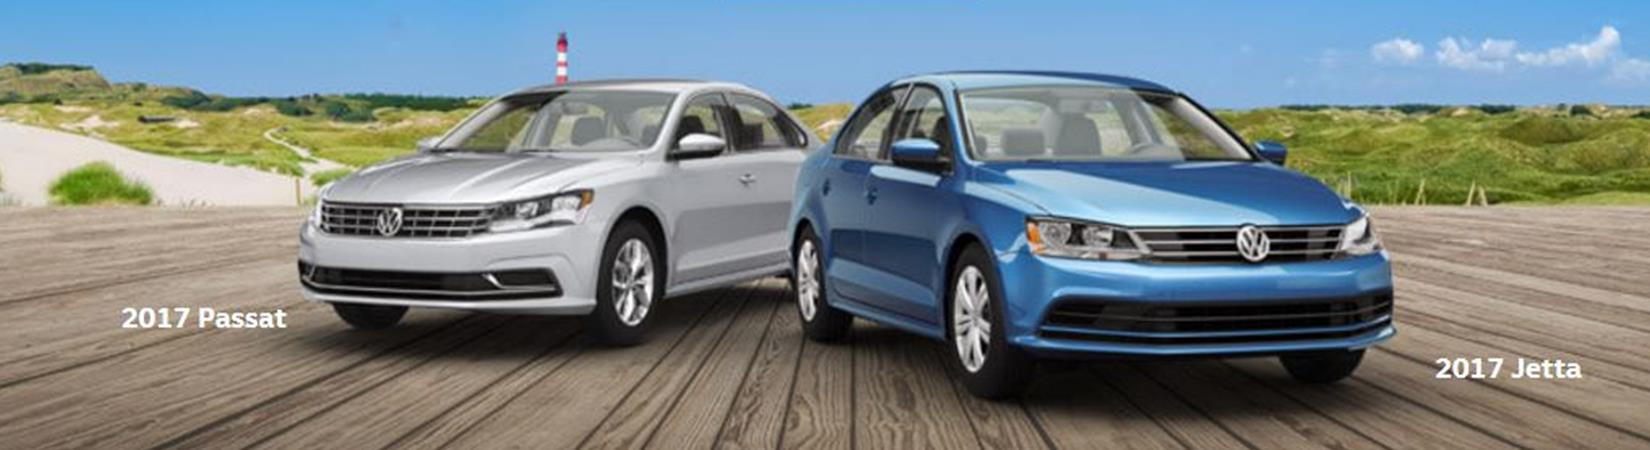 Certified Pre-Owned, CPO, E-Tested, Certified, Owasco VW, Volkswagen, Volkswagens for Sale, Whitby, Oshawa, Bowmanville, Ajax, Pickering Clarington, Dealership, Deals, Sales, Jetta, Golf, Tiguan, Beetle, AllTrack, Sportwagon, GTI, Touareg, Atlas, e-Golf, Durham, Volkswagen Plus, How-To, Good Deals, Best Deals, Cheap, Best Price, Low Cost.